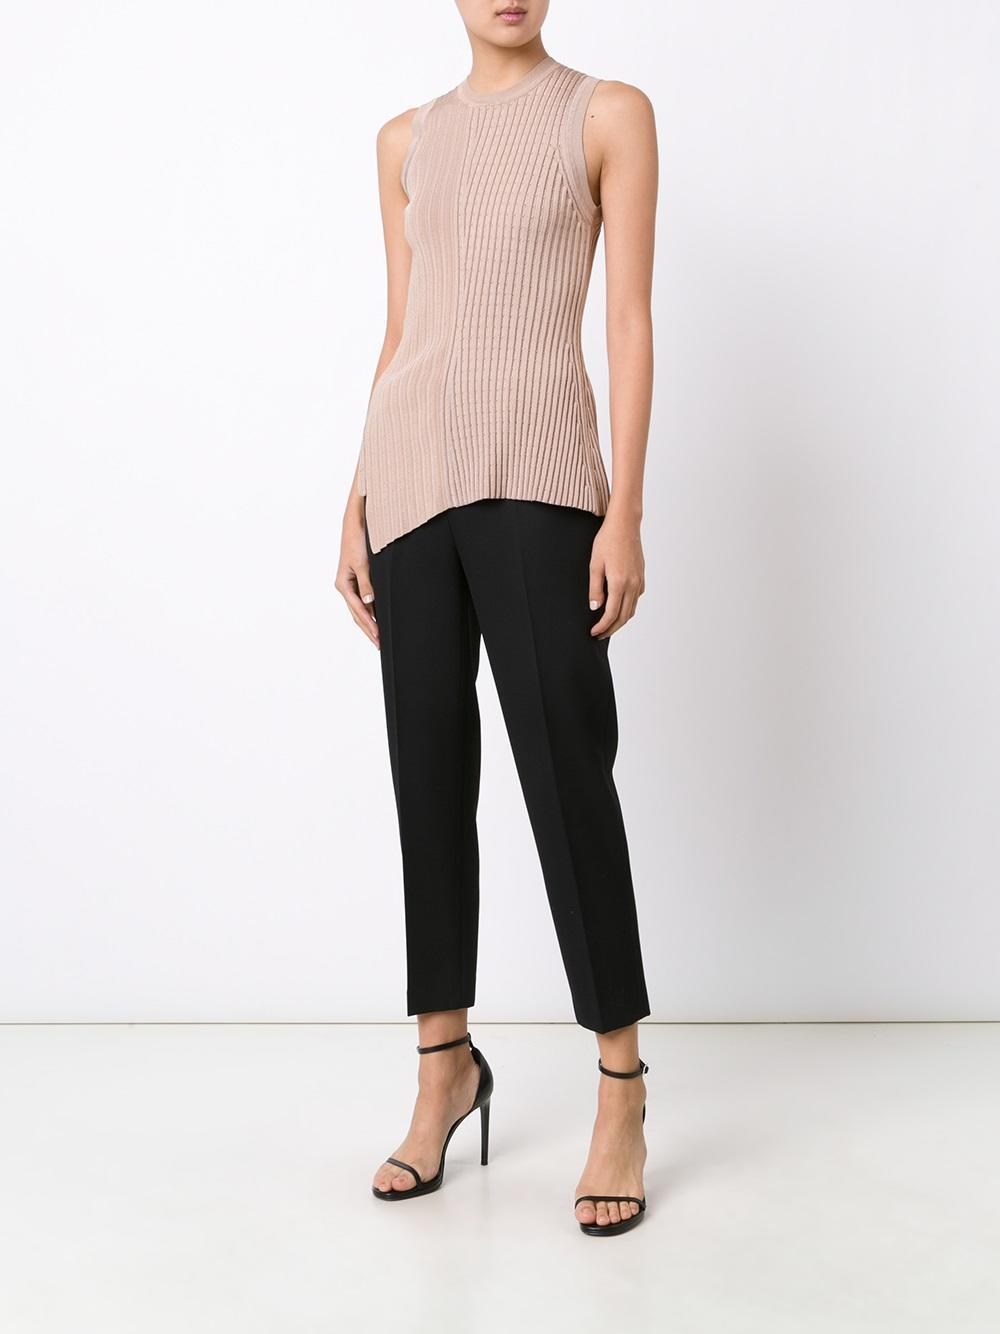 Jason Wu Ribbed Asymmetric Tank Top